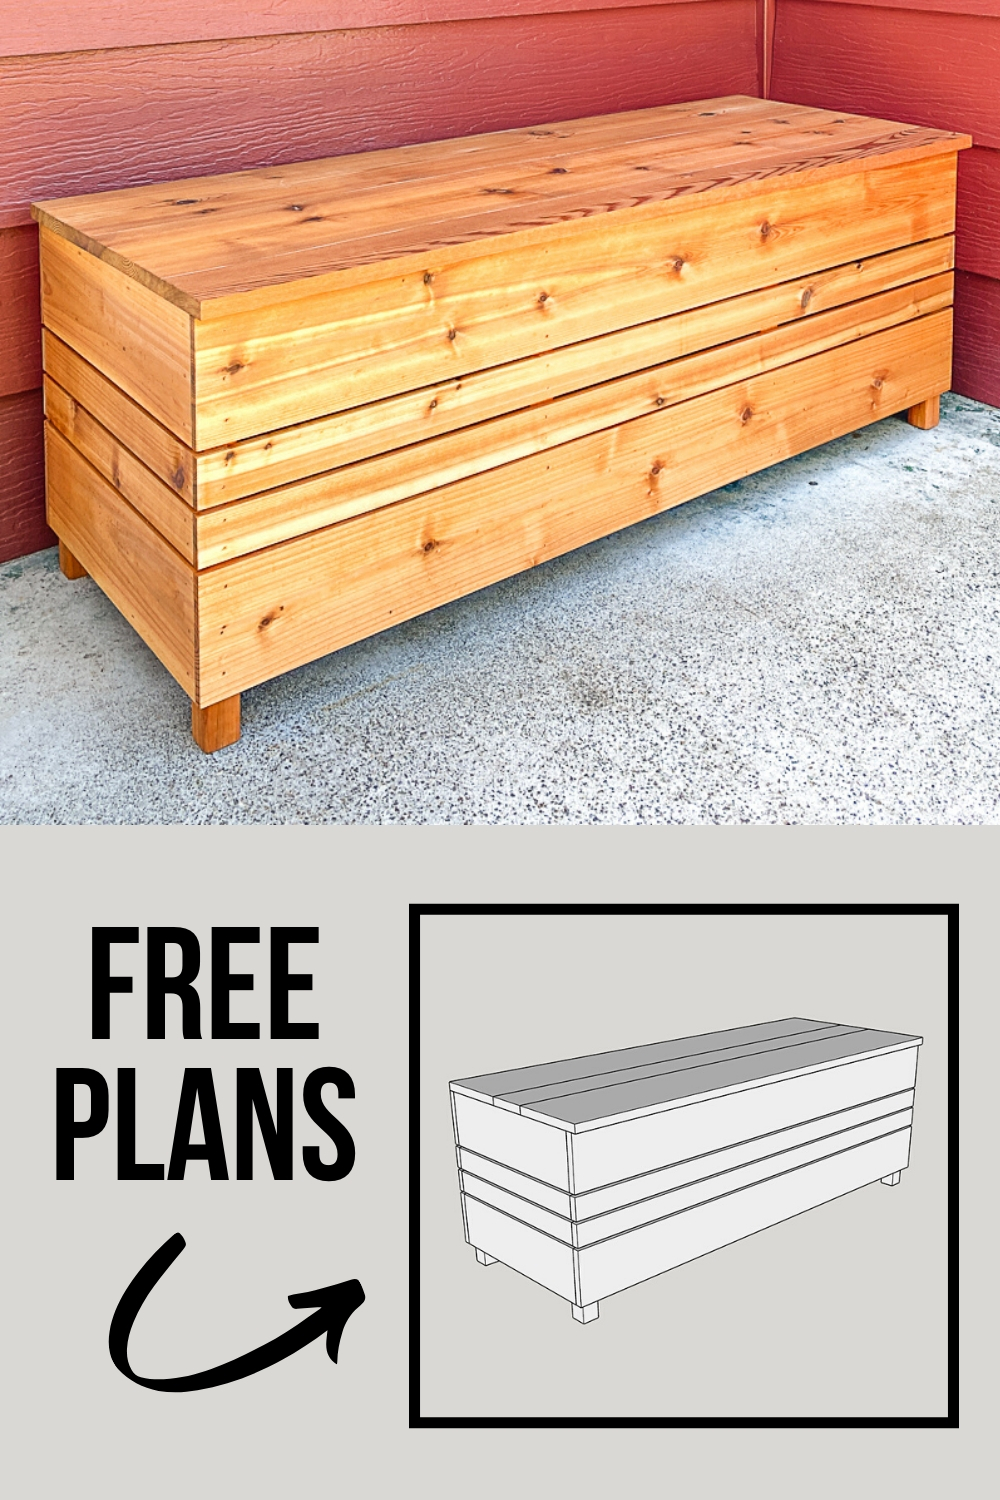 Diy Outdoor Storage Box With Free Plans In 2020 Outdoor Storage